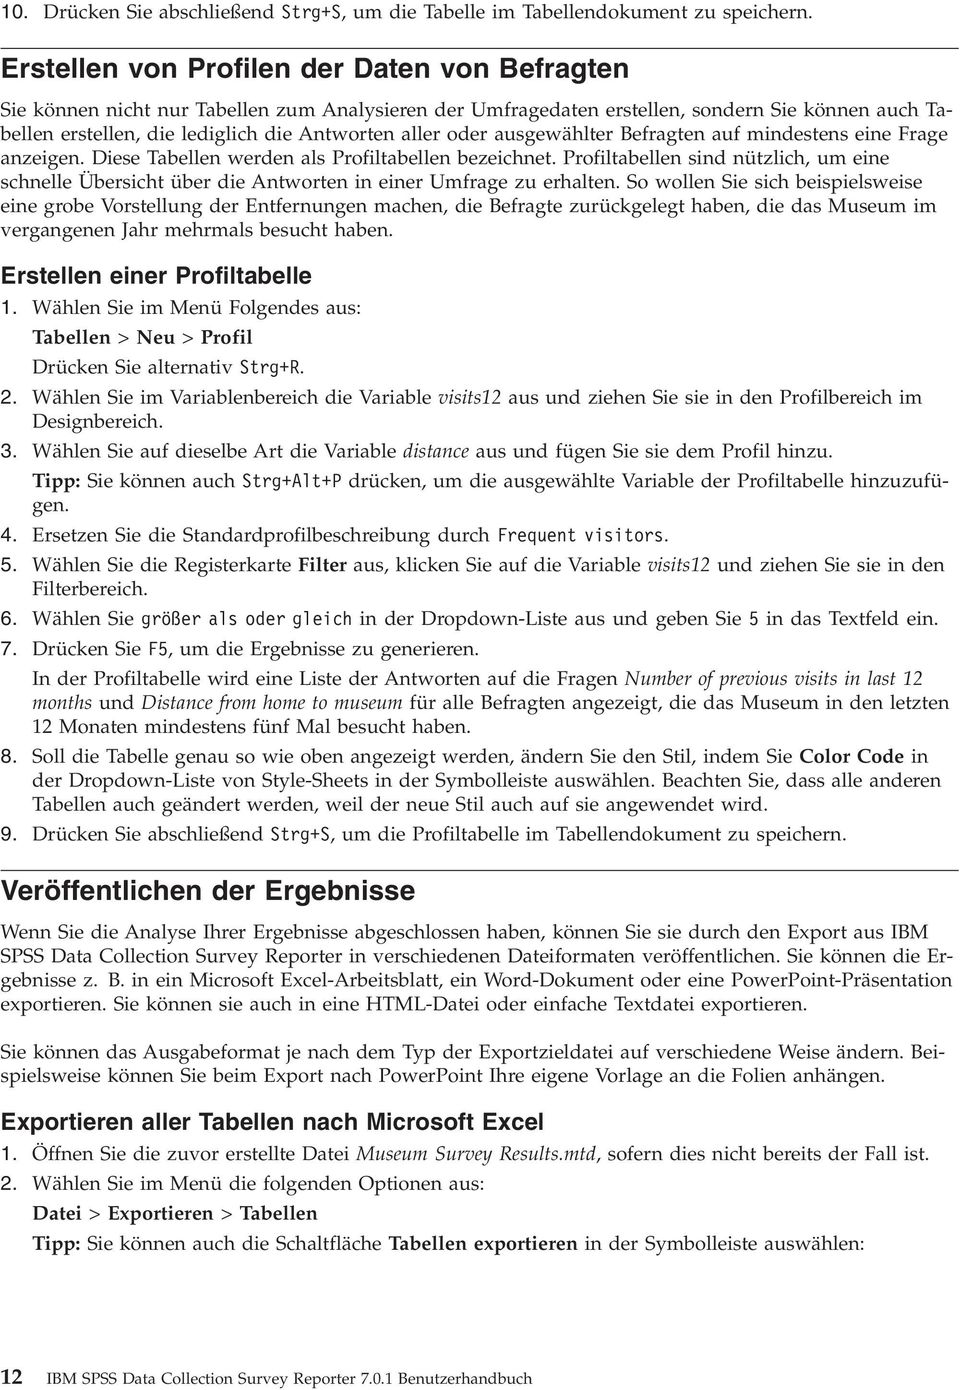 IBM SPSS Data Collection Survey Reporter Benutzerhandbuch - PDF